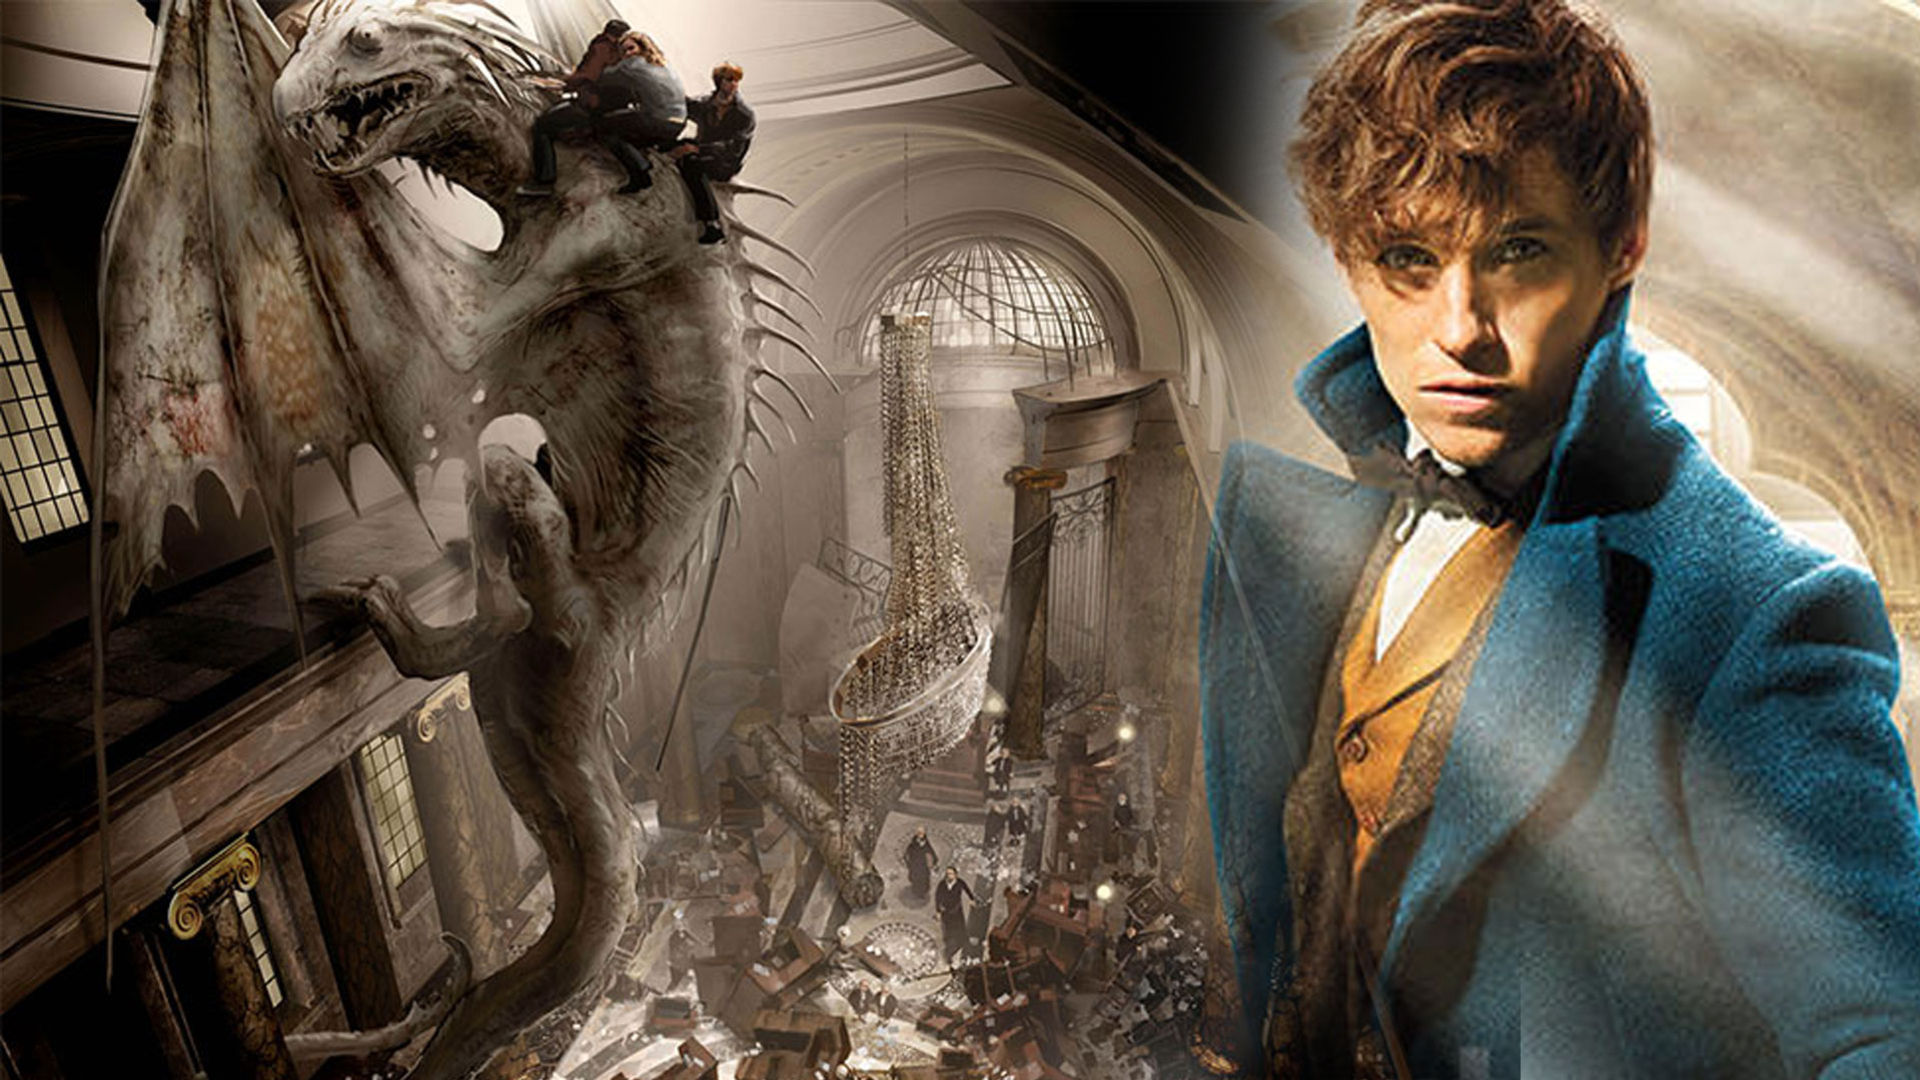 Yeni Harry Potterın Son Filmi Fantastic Beasts And Where To Find Them